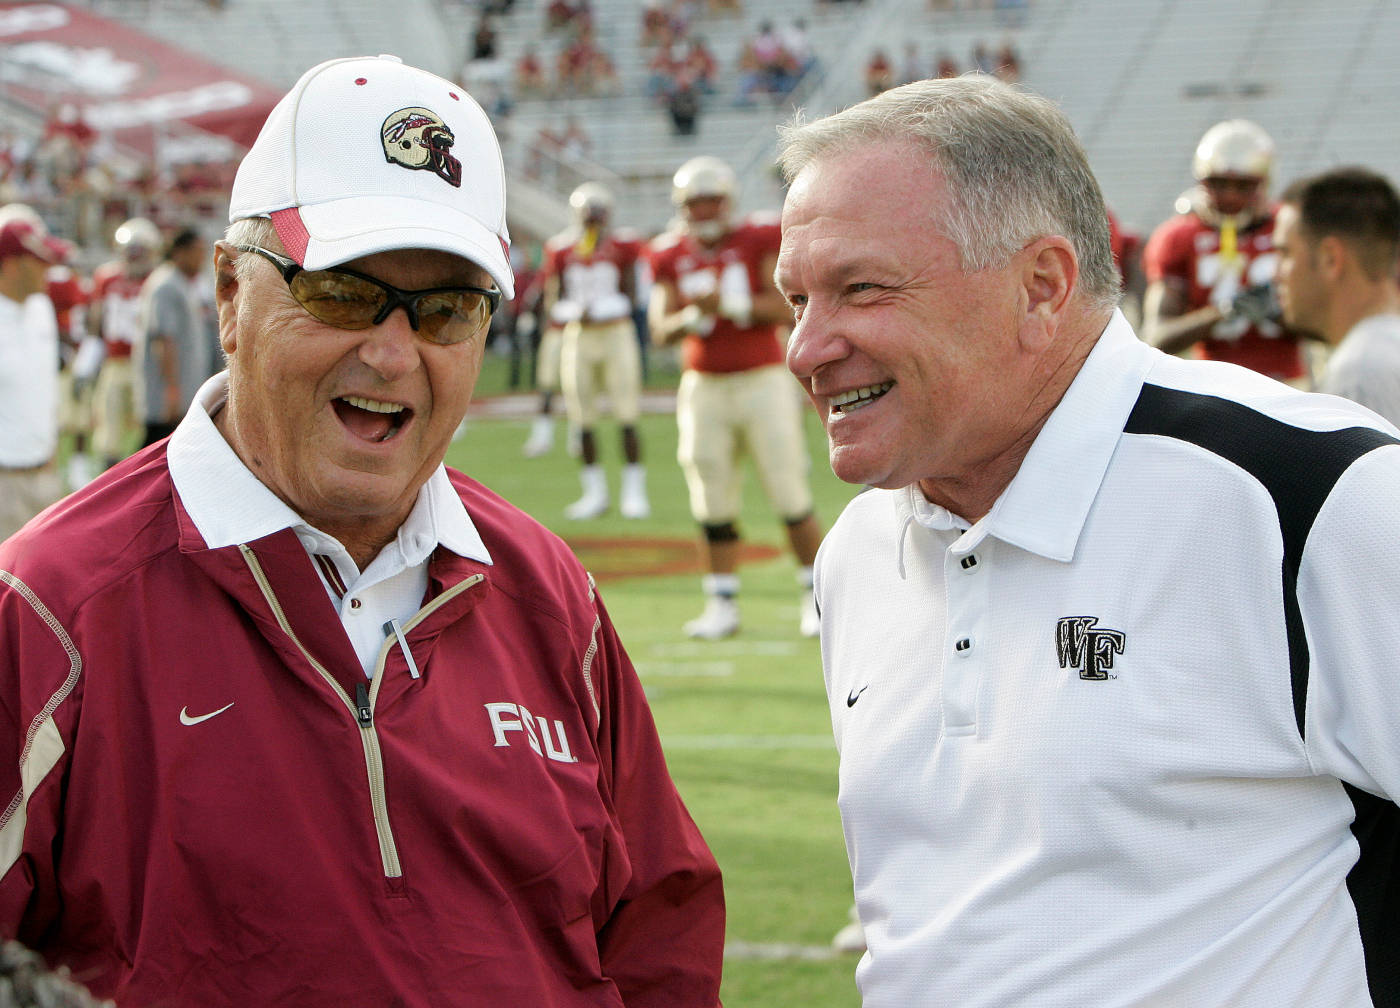 Head coach Bobby Bowden and Jim Grobe share a moment before the start of the game.